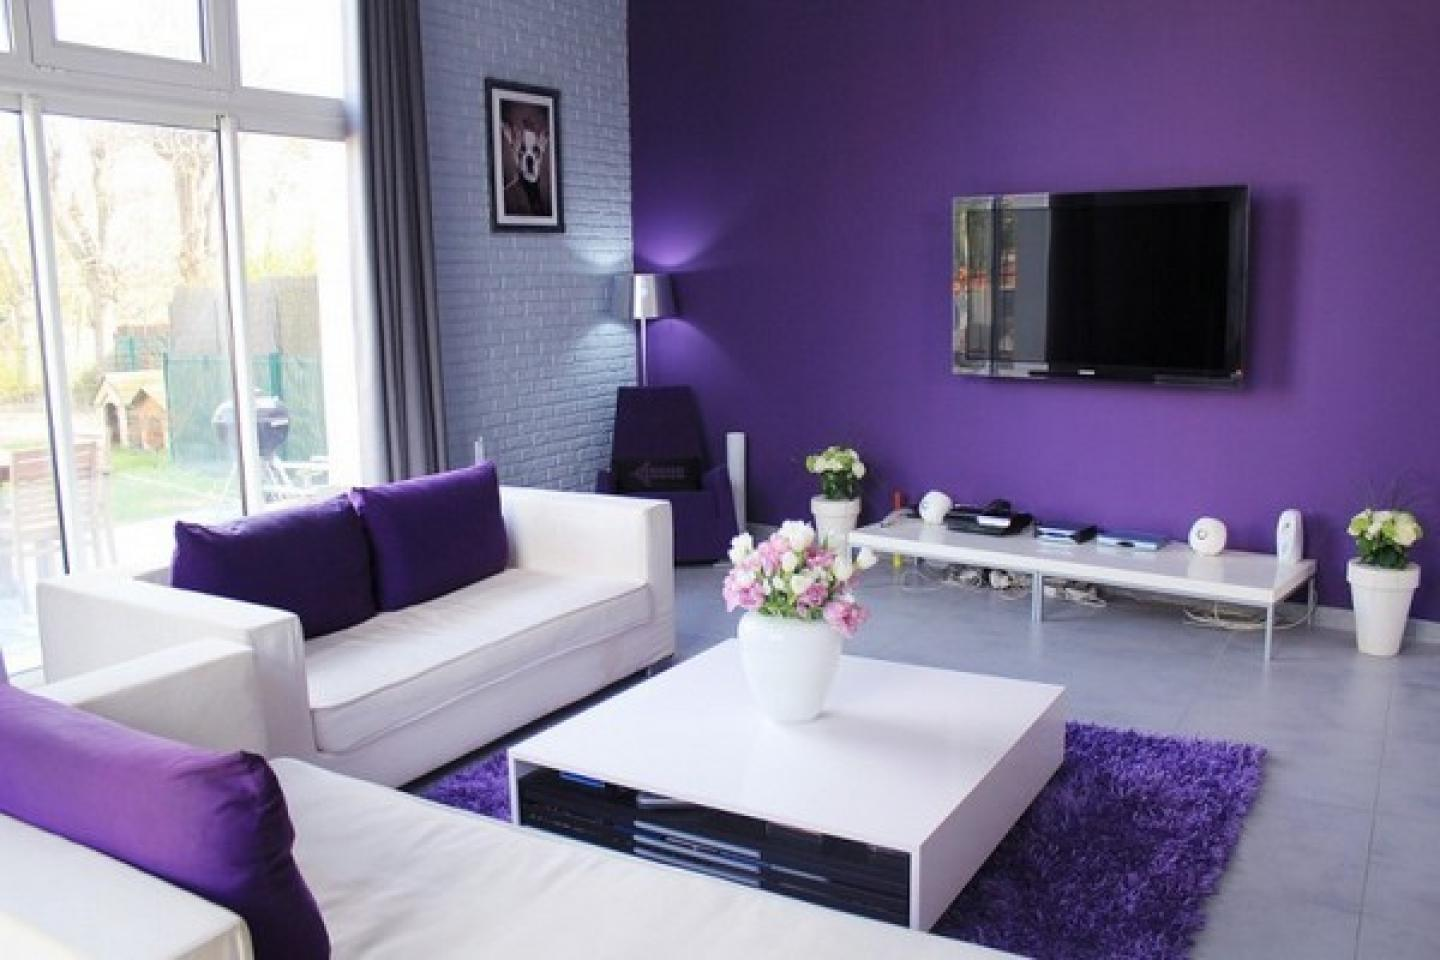 Purple and lilac living room with white sofas facing a wall mounted TV